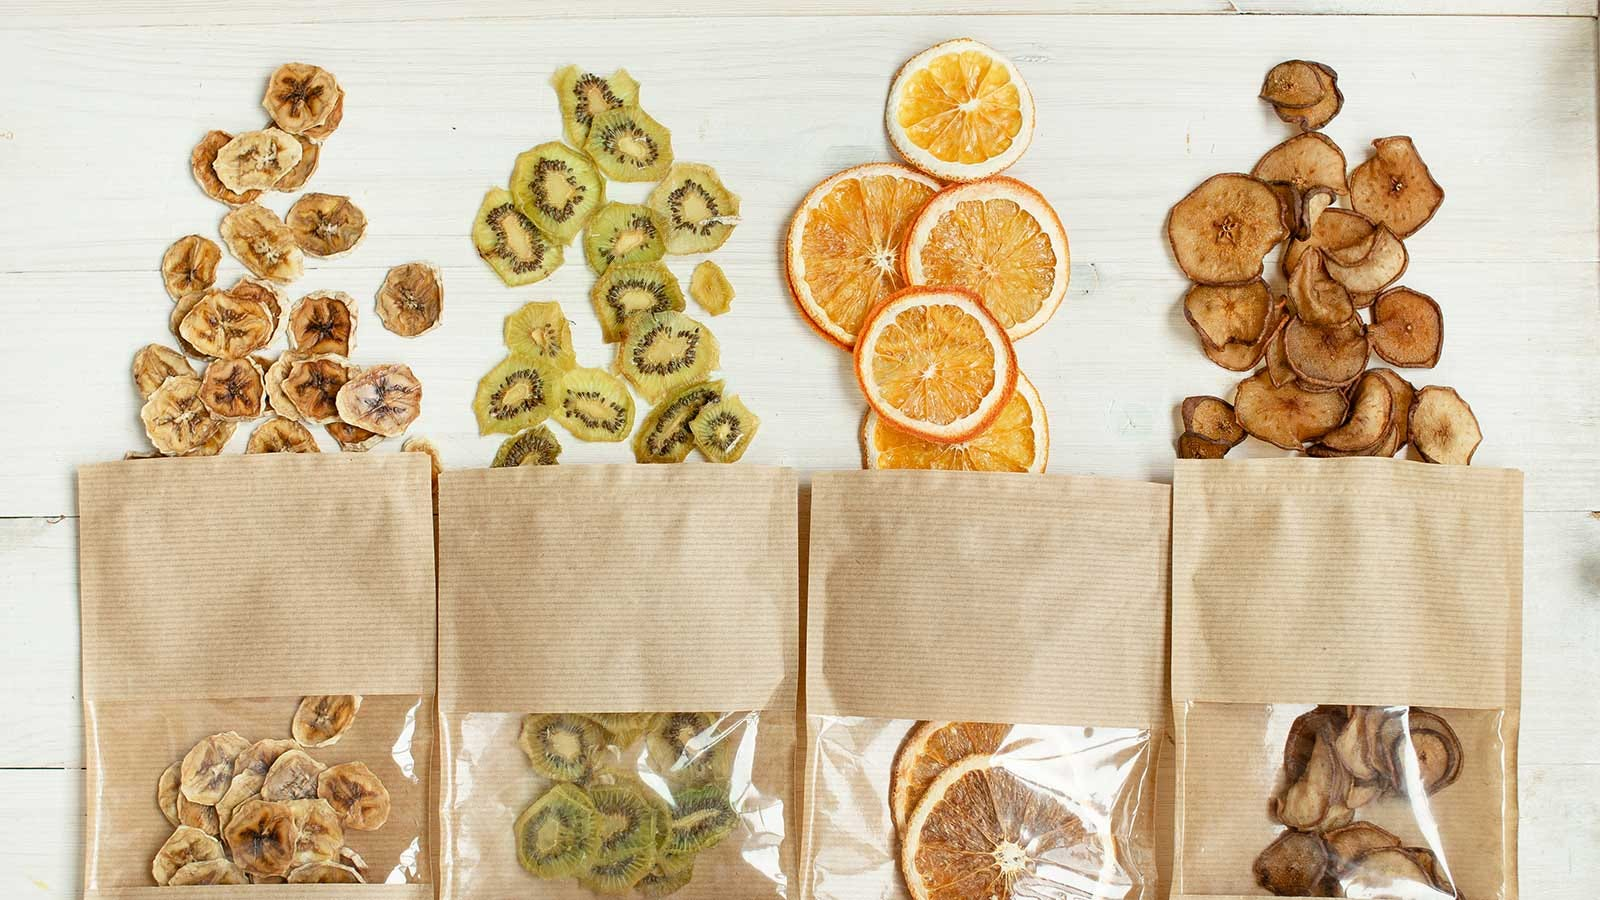 Four paper bags of dehydrated fruit with some of the contents of each spilled out on a table.